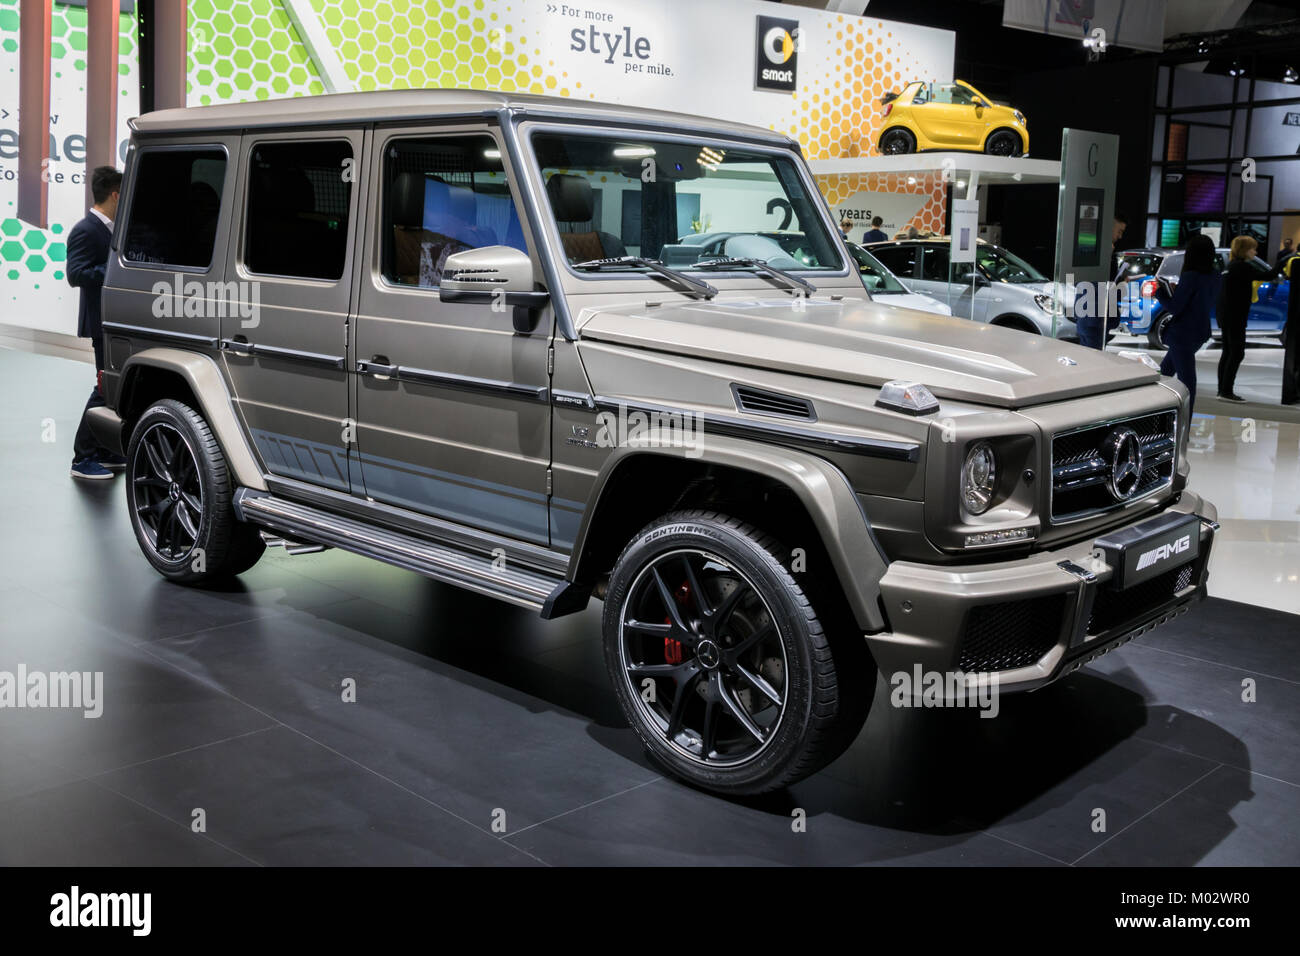 brussels jan 10 2018 mercedes benz g class amg 4x4 car showcased stock photo 172167828 alamy. Black Bedroom Furniture Sets. Home Design Ideas